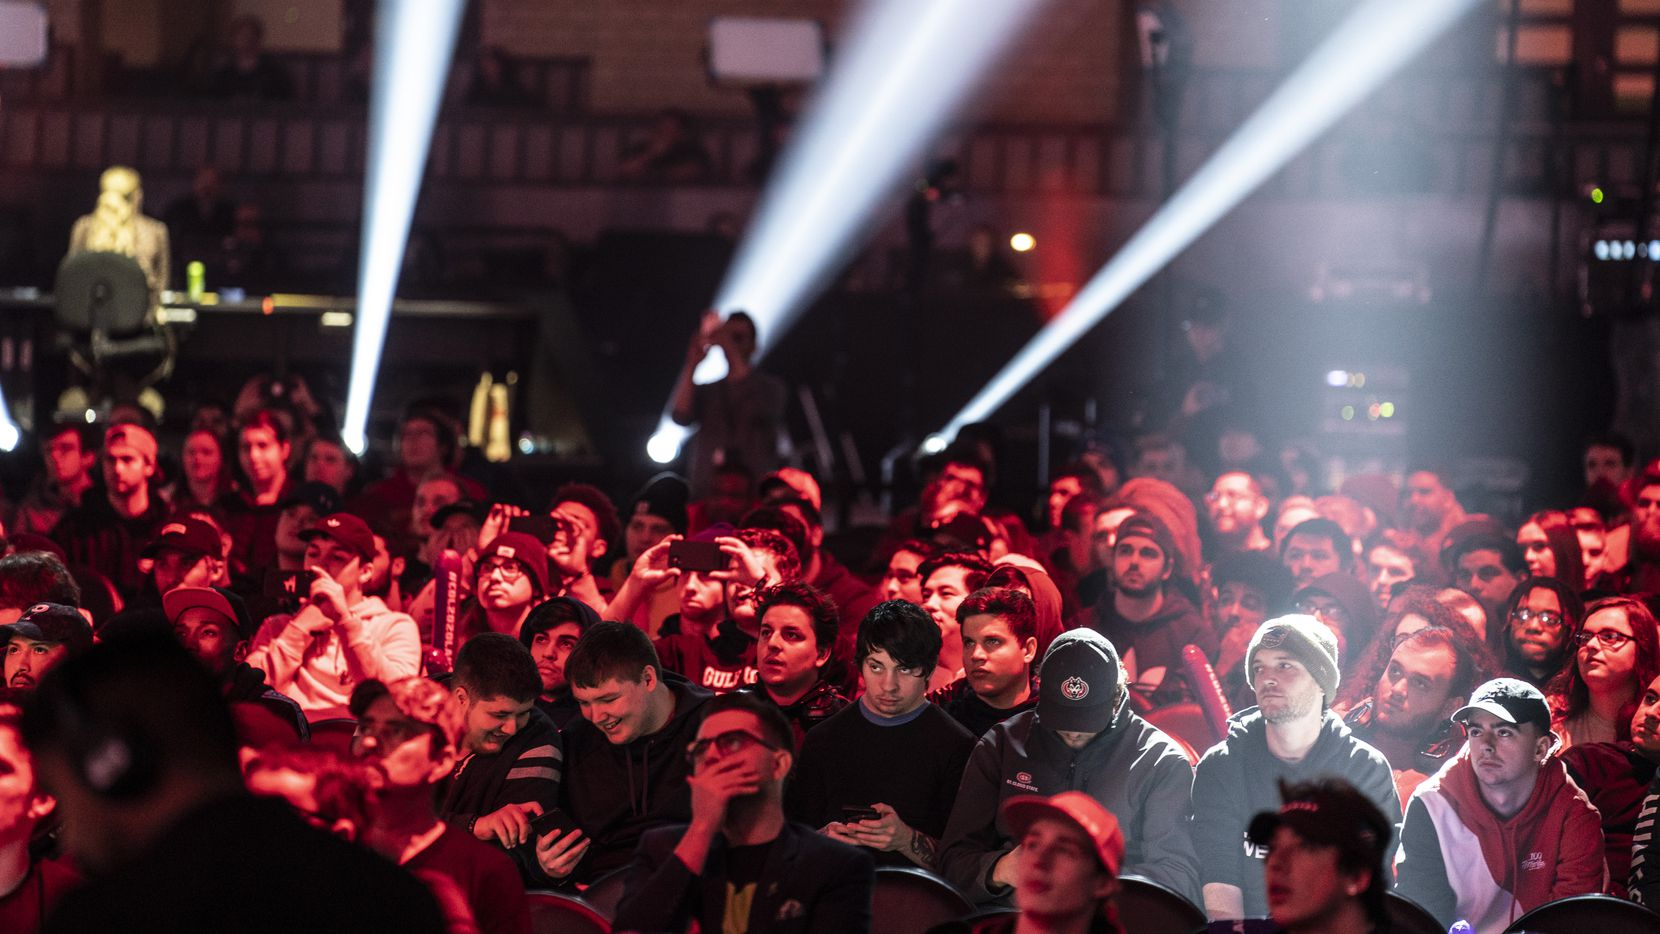 Fans watch as Dallas Empire competes against Atlanta Faze in the Call of Duty League Launch Weekend at the Armory in Minneapolis, Minn., January 25, 2020.